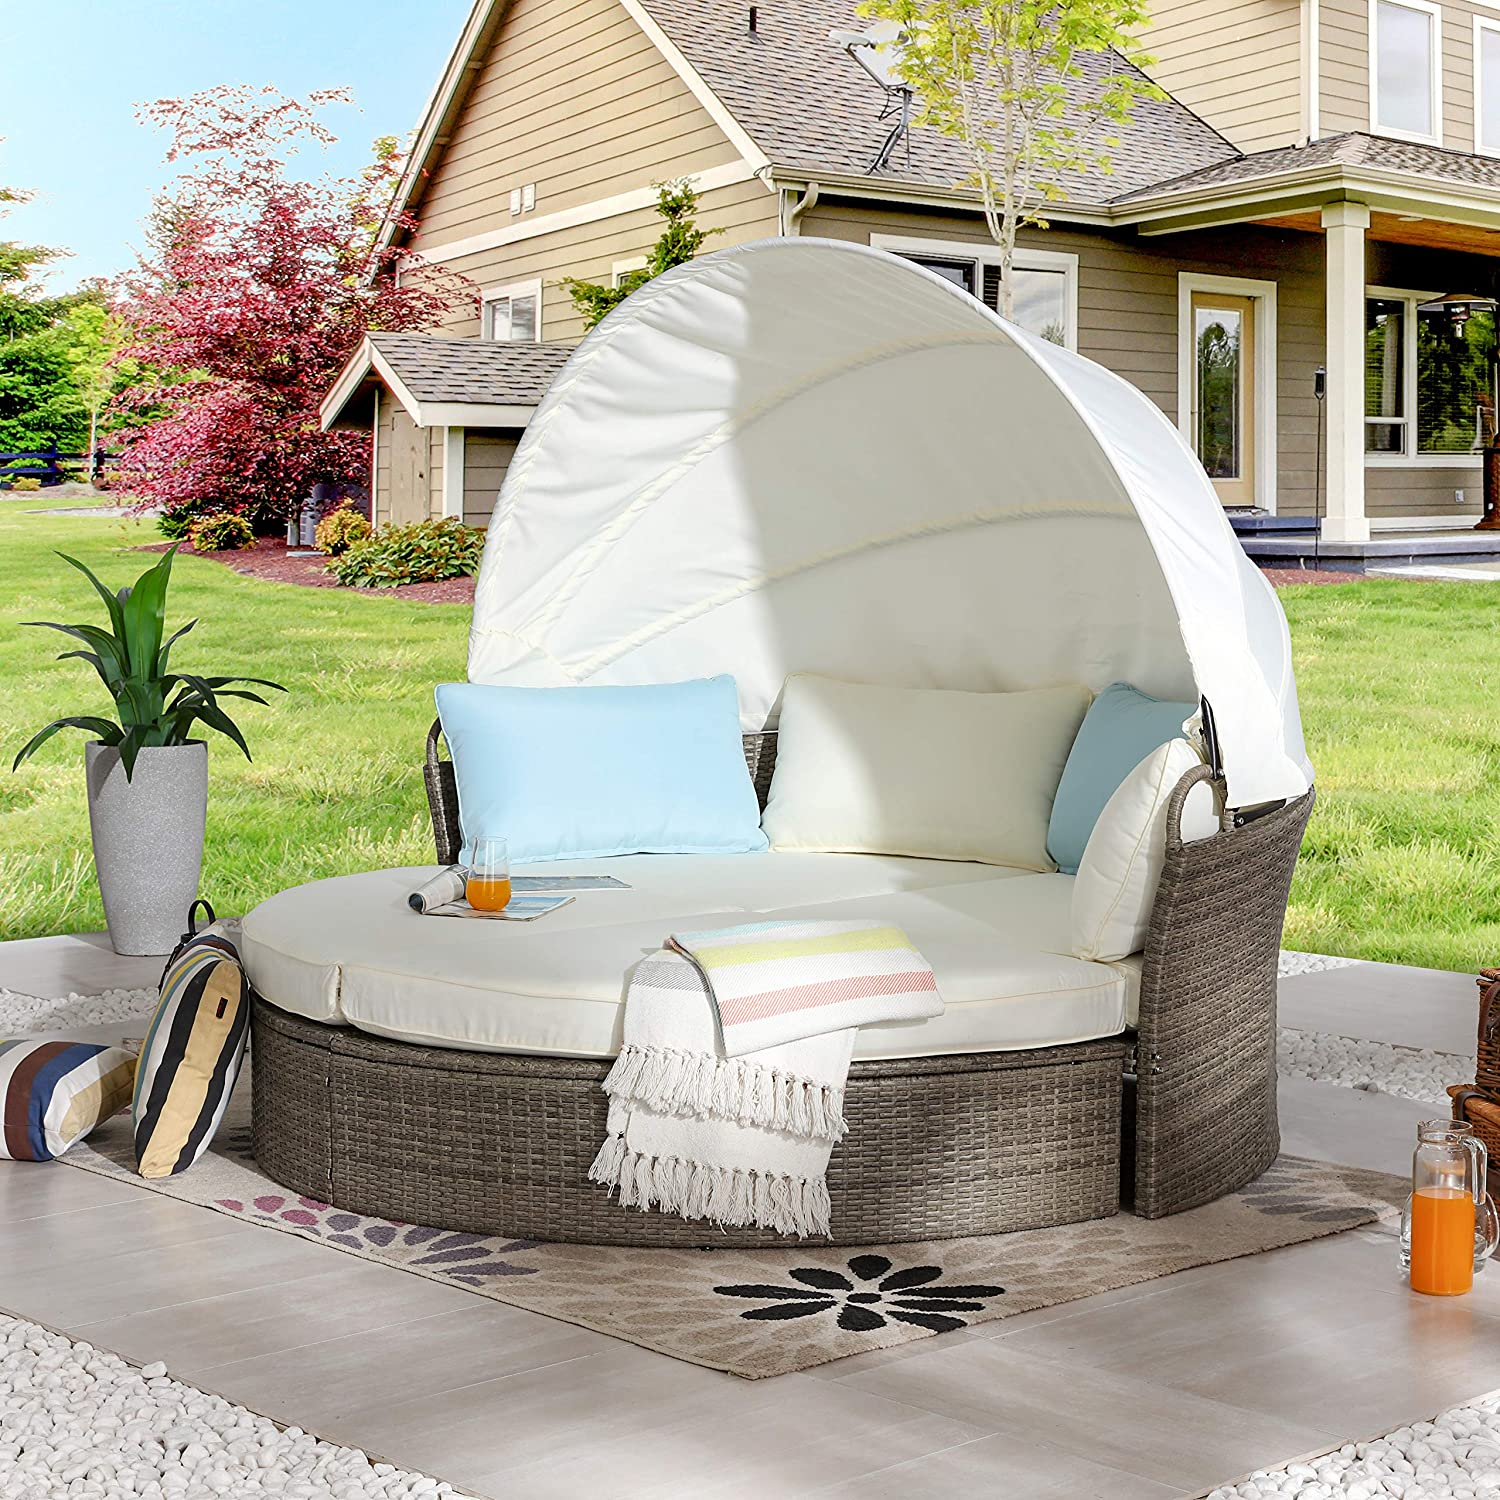 LOKATSE HOME Outdoor Round Spring new work Daybed Patio Canopy with Quantity limited Retractable